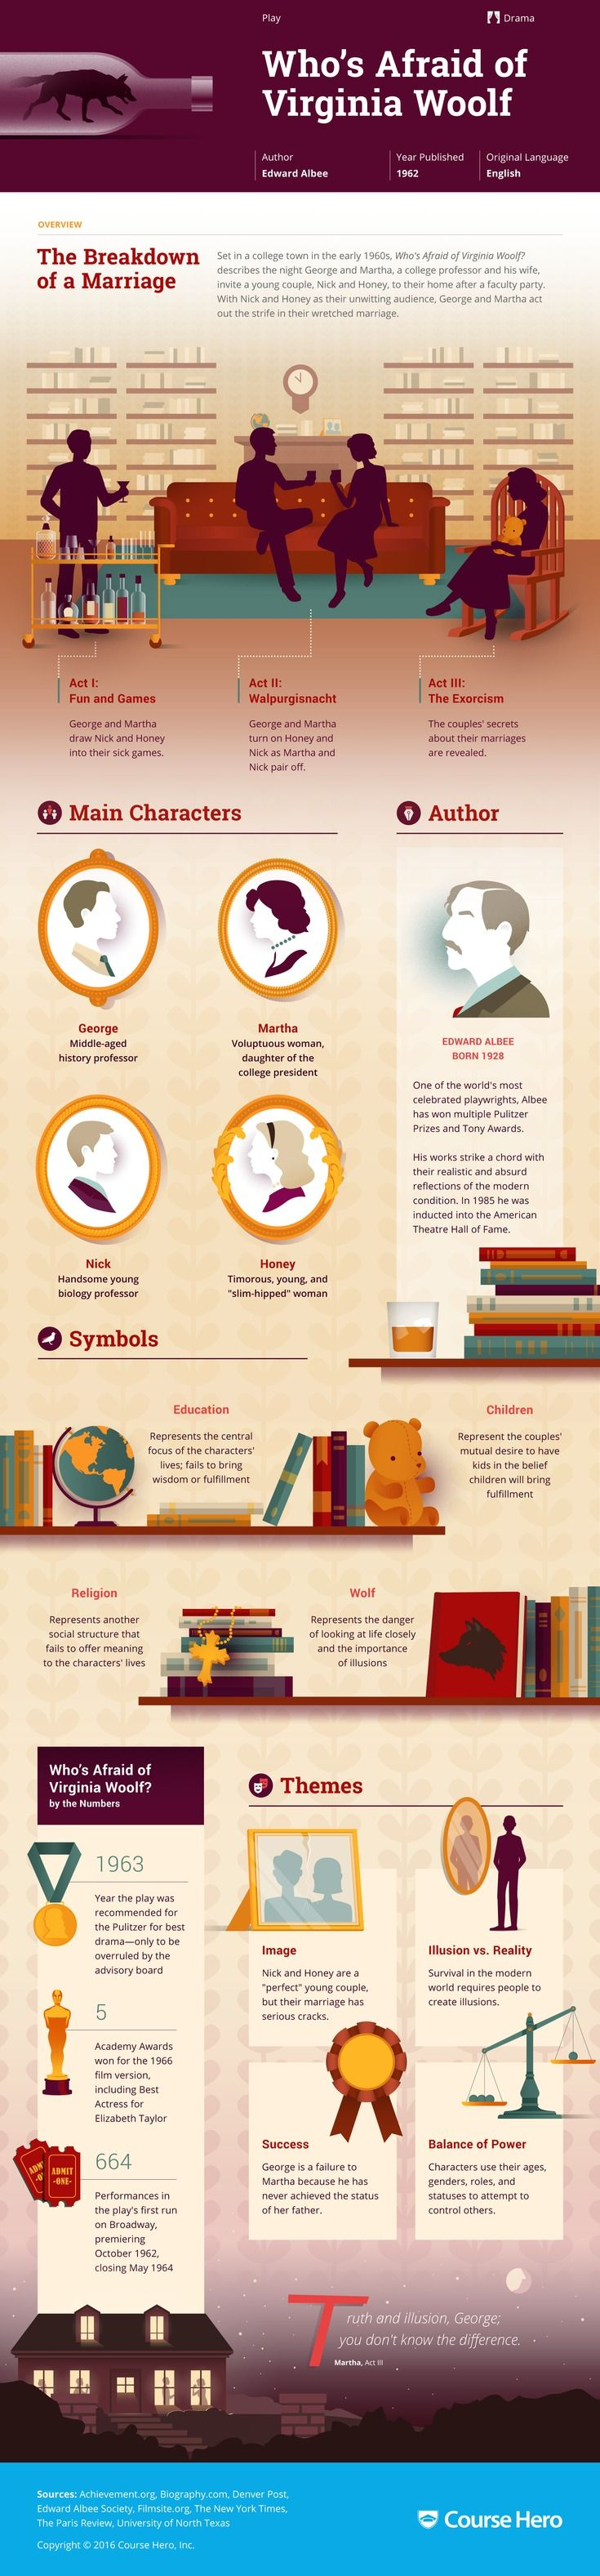 This 'Who's Afraid of Virginia Woolf?' infographic from Course Hero is as awesome as it is helpful. Check it out!